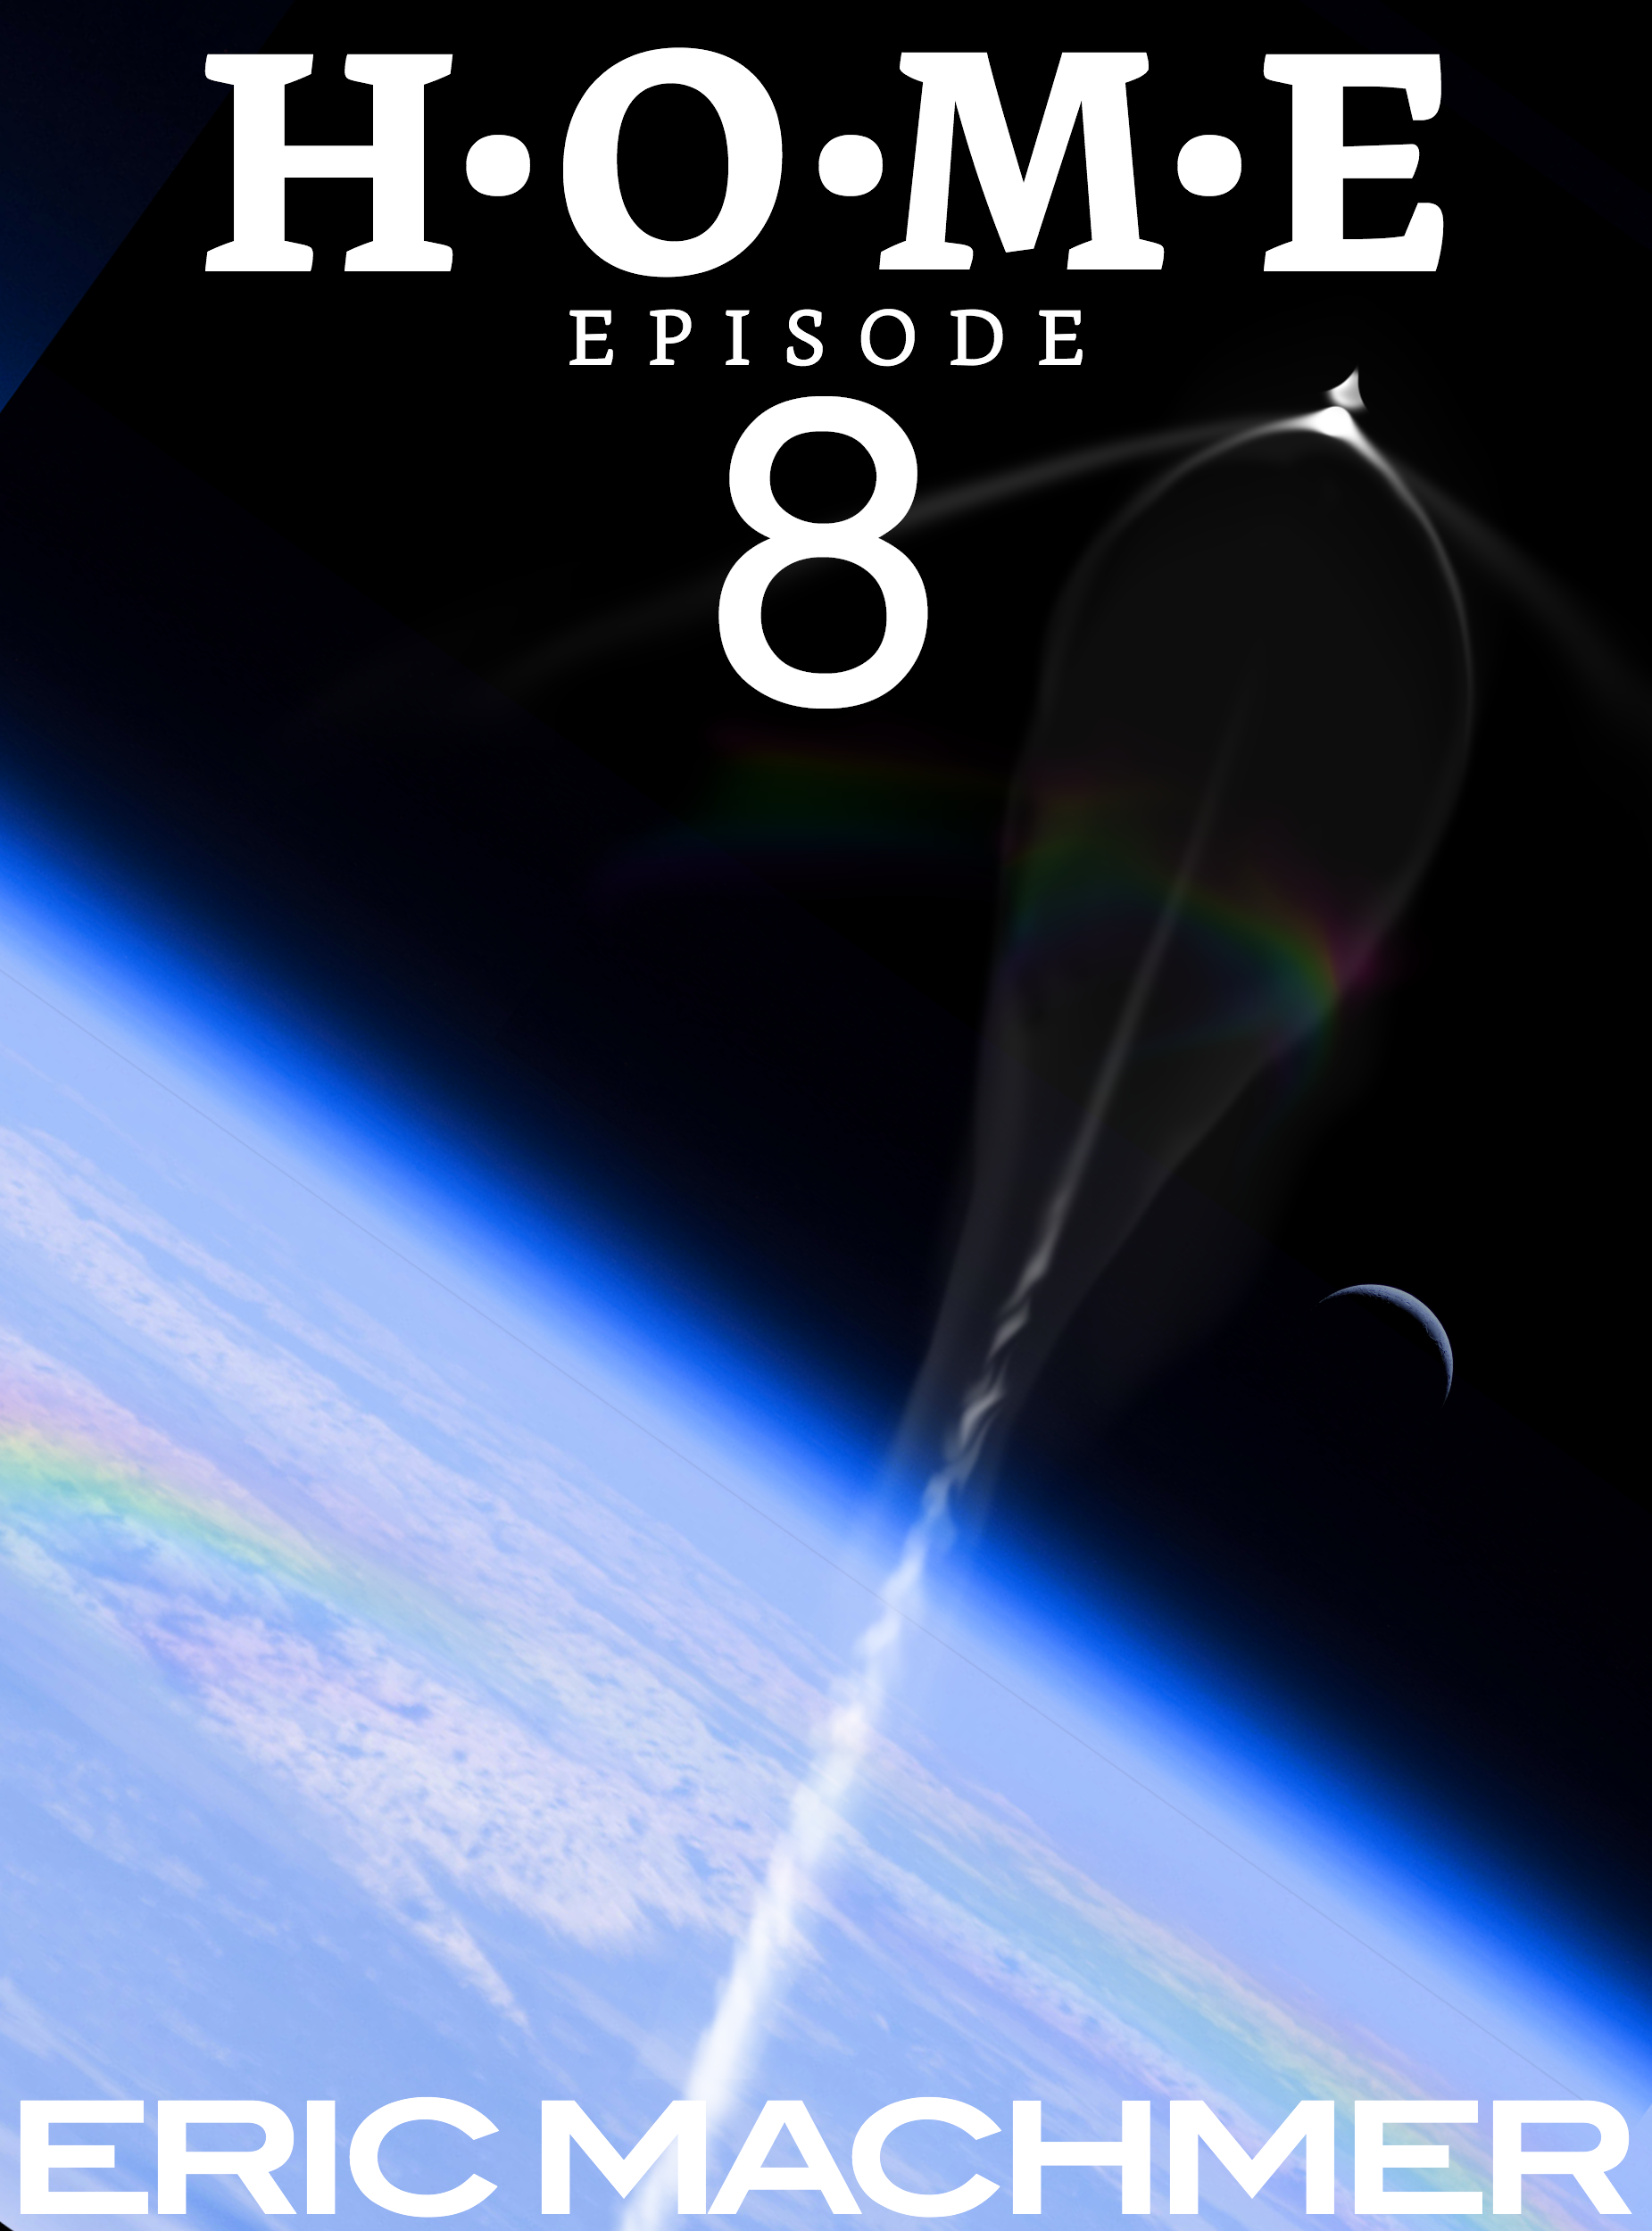 S01E08_cover_highres_amazon_kdp